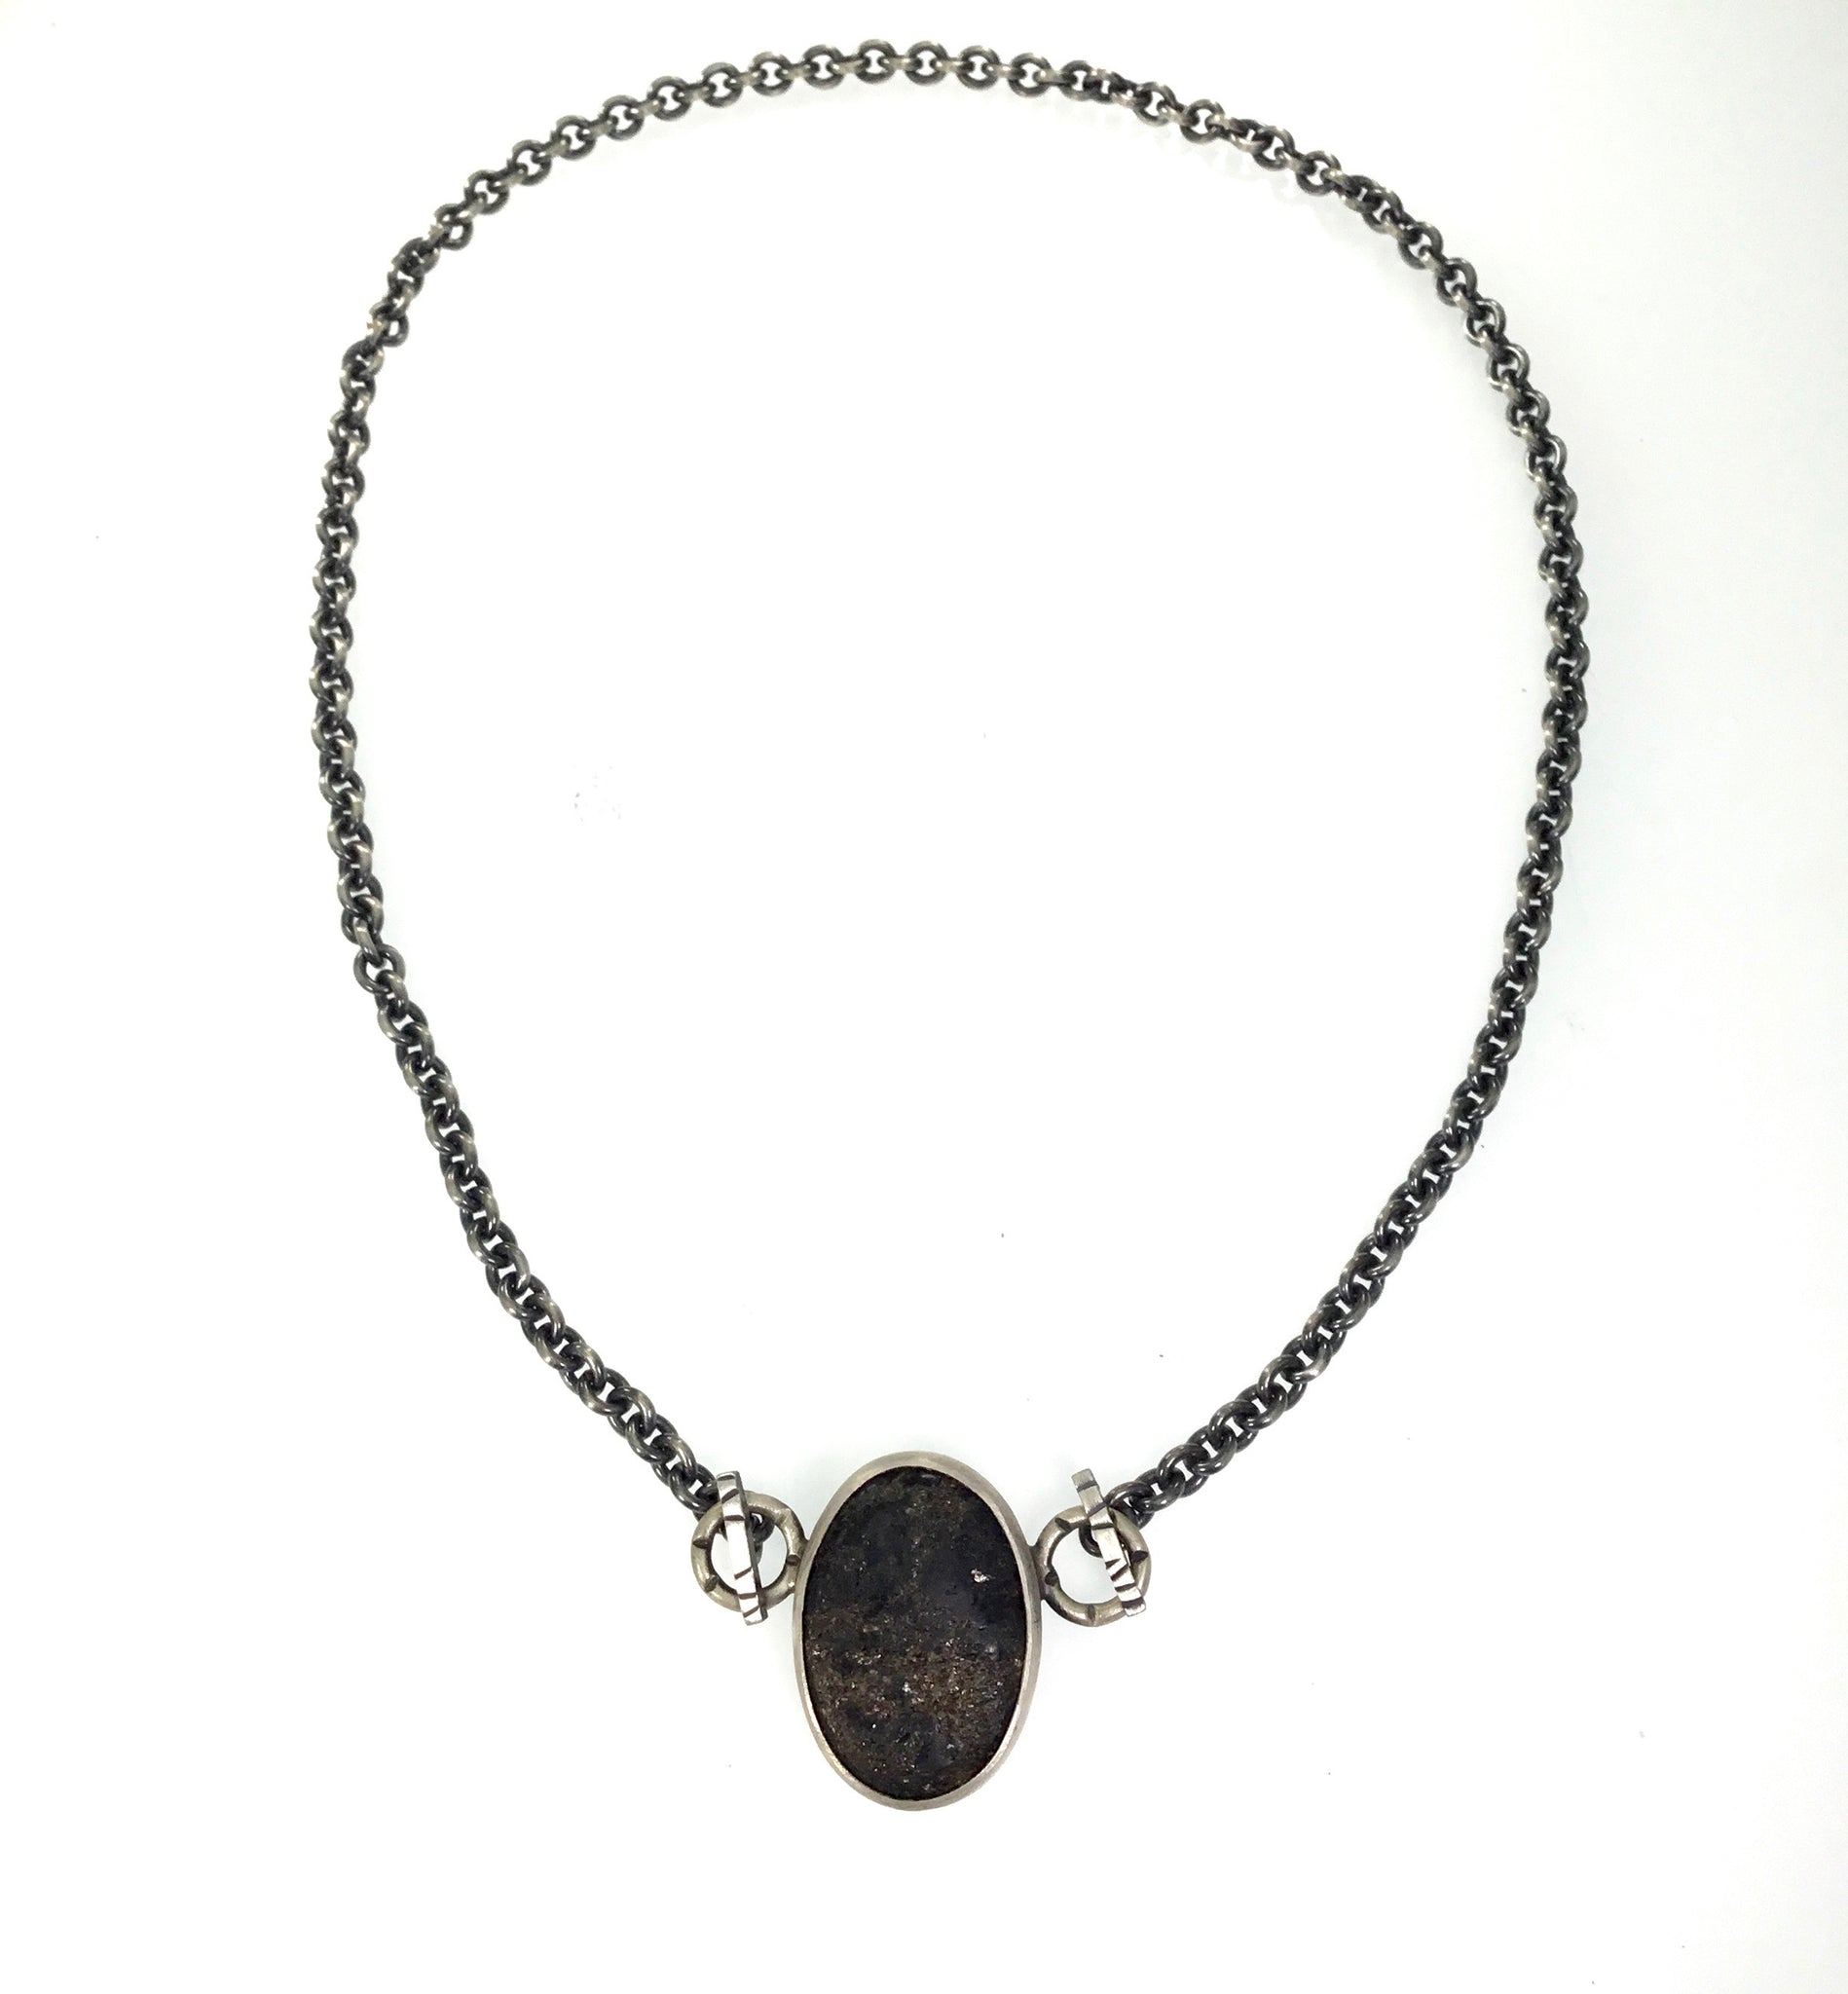 Terri Logan Stone Choker Necklace